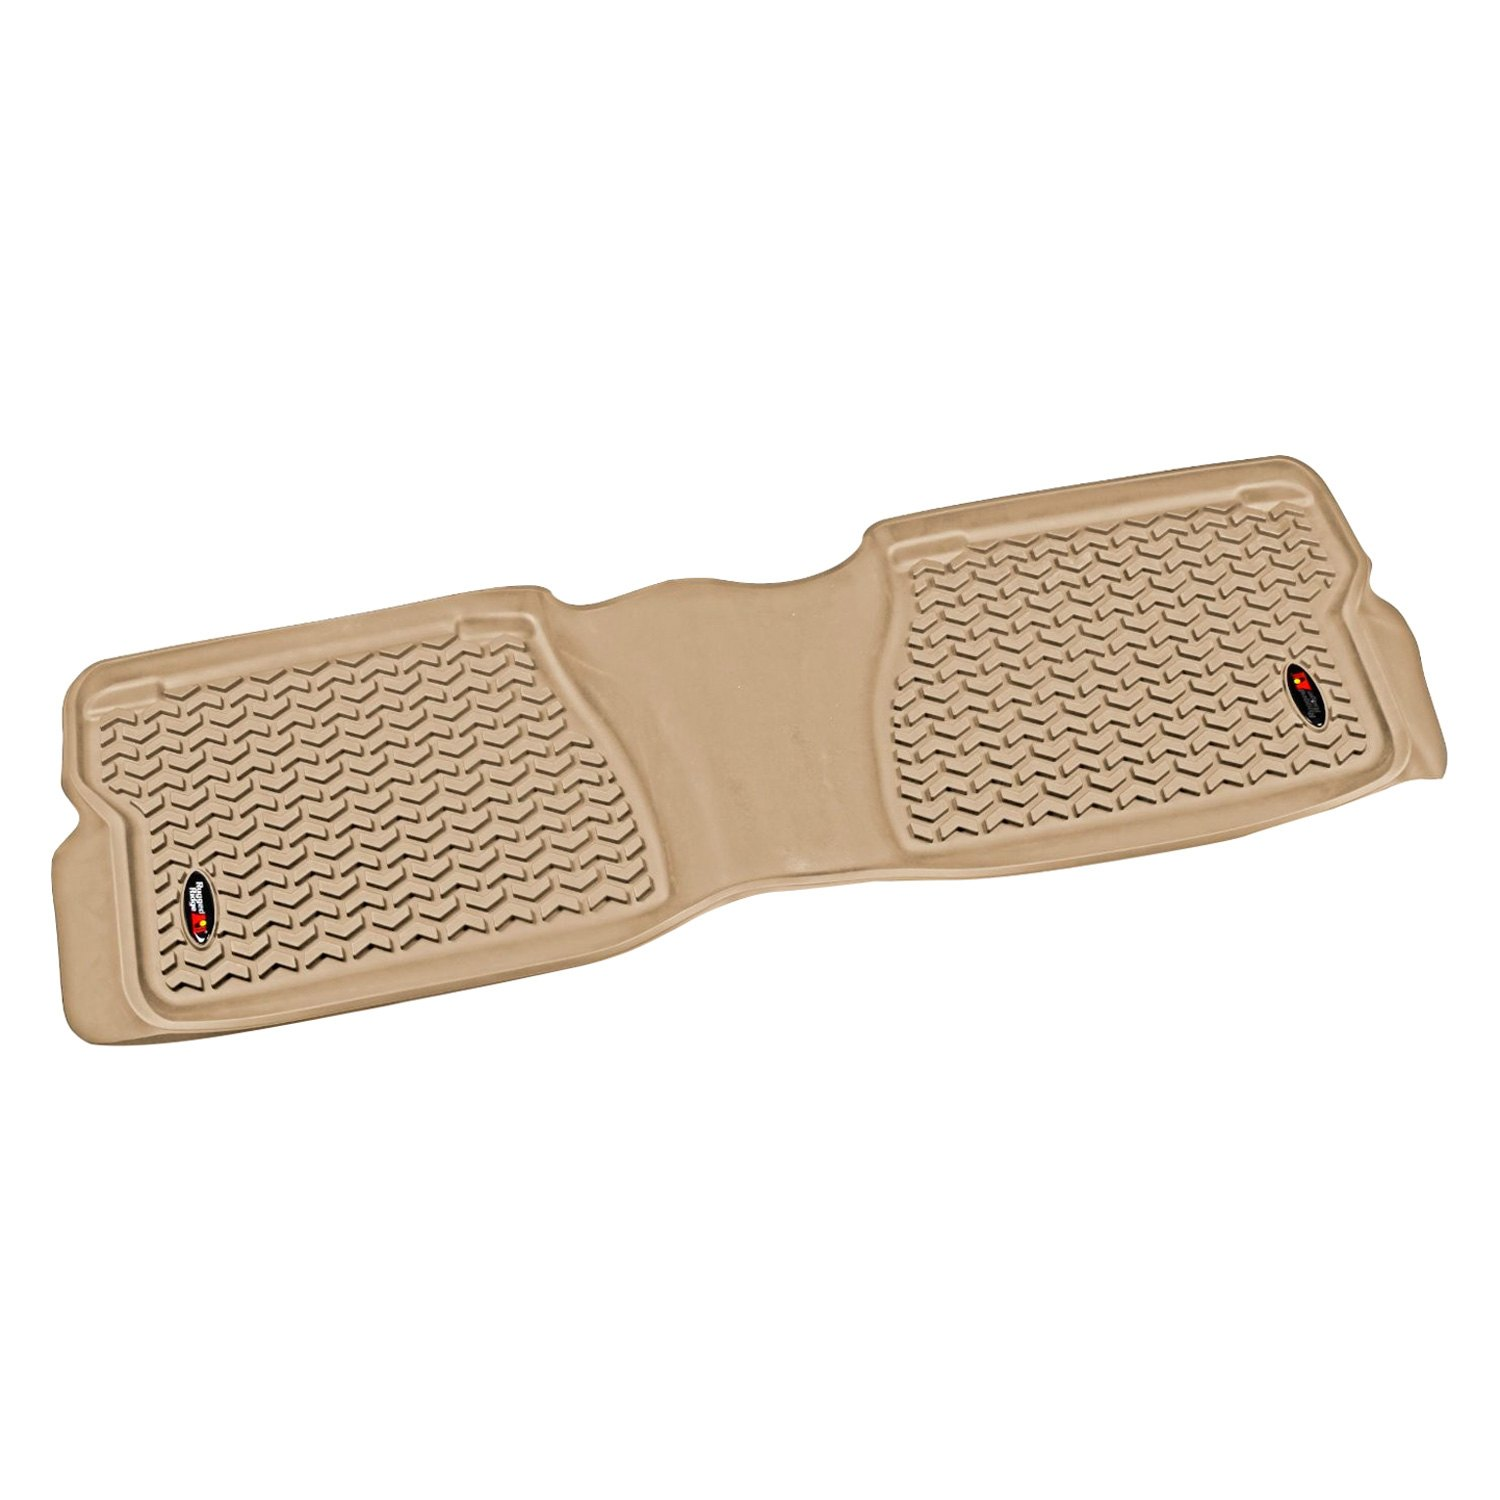 Rugged Ridge 12-18 Rear Floor Liner Kit - Tan